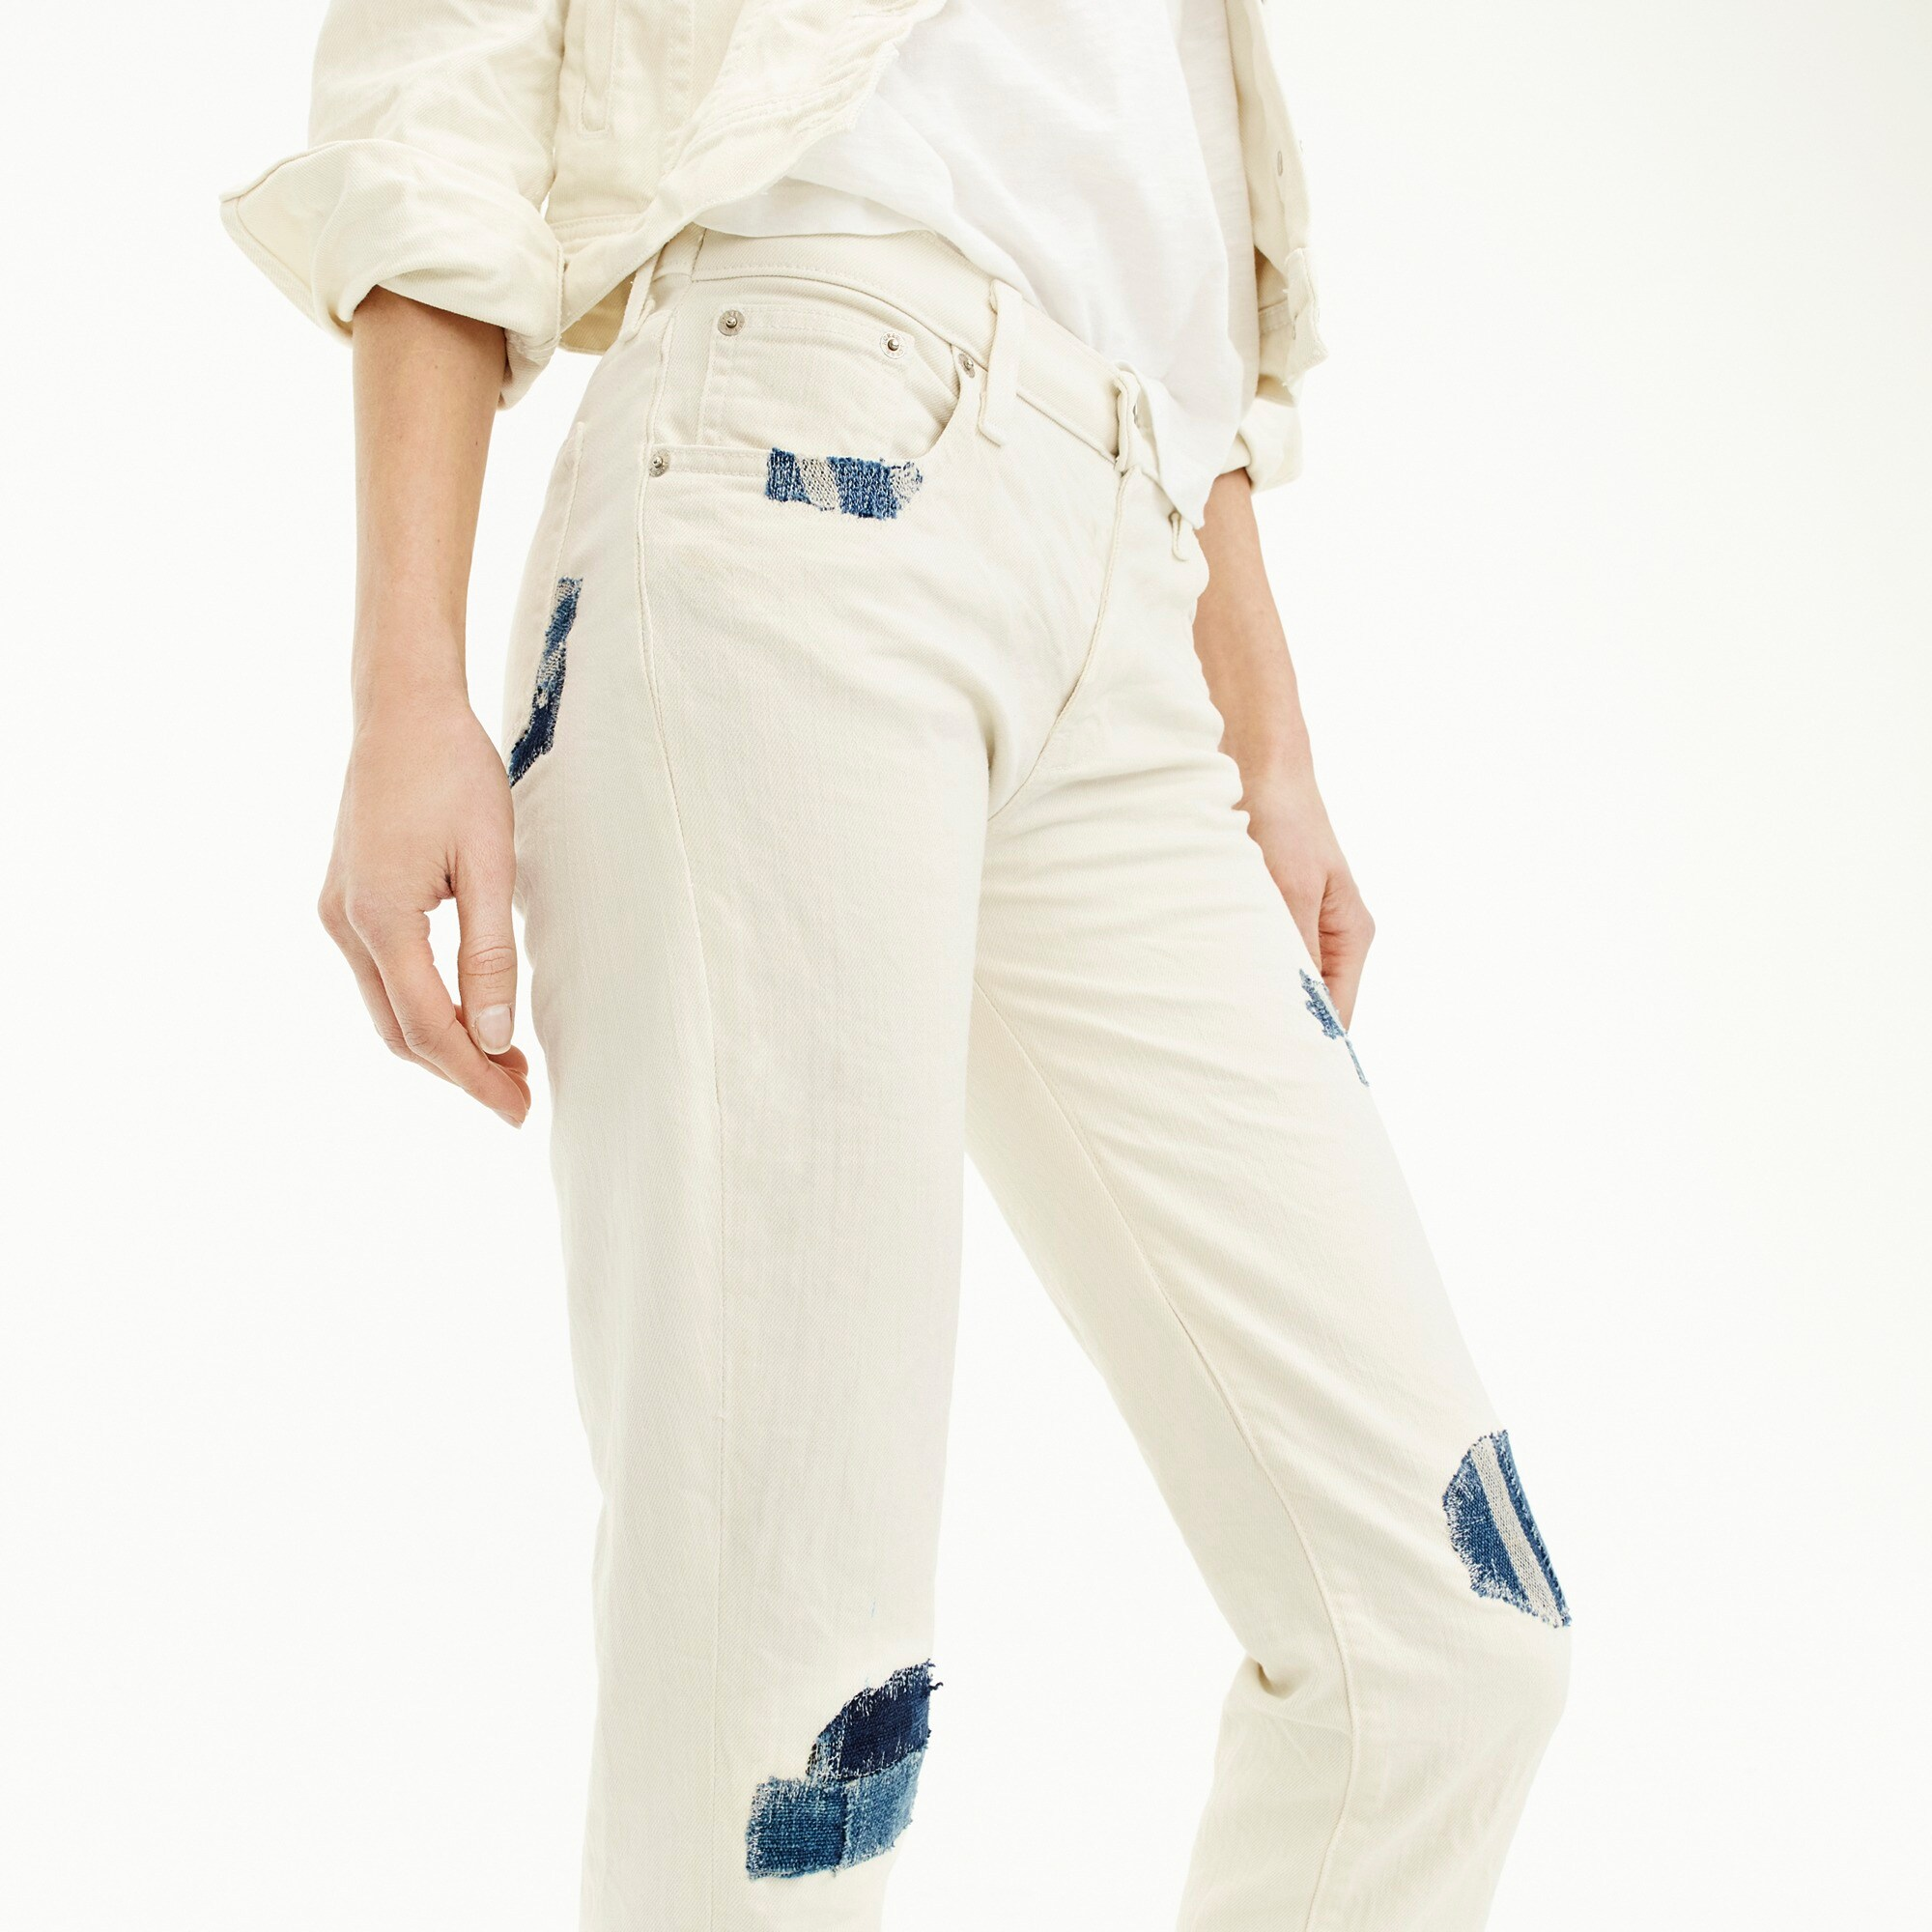 Image 3 for Sean Hornbeak for J.Crew slim boyfriend jean with indigo patches in white